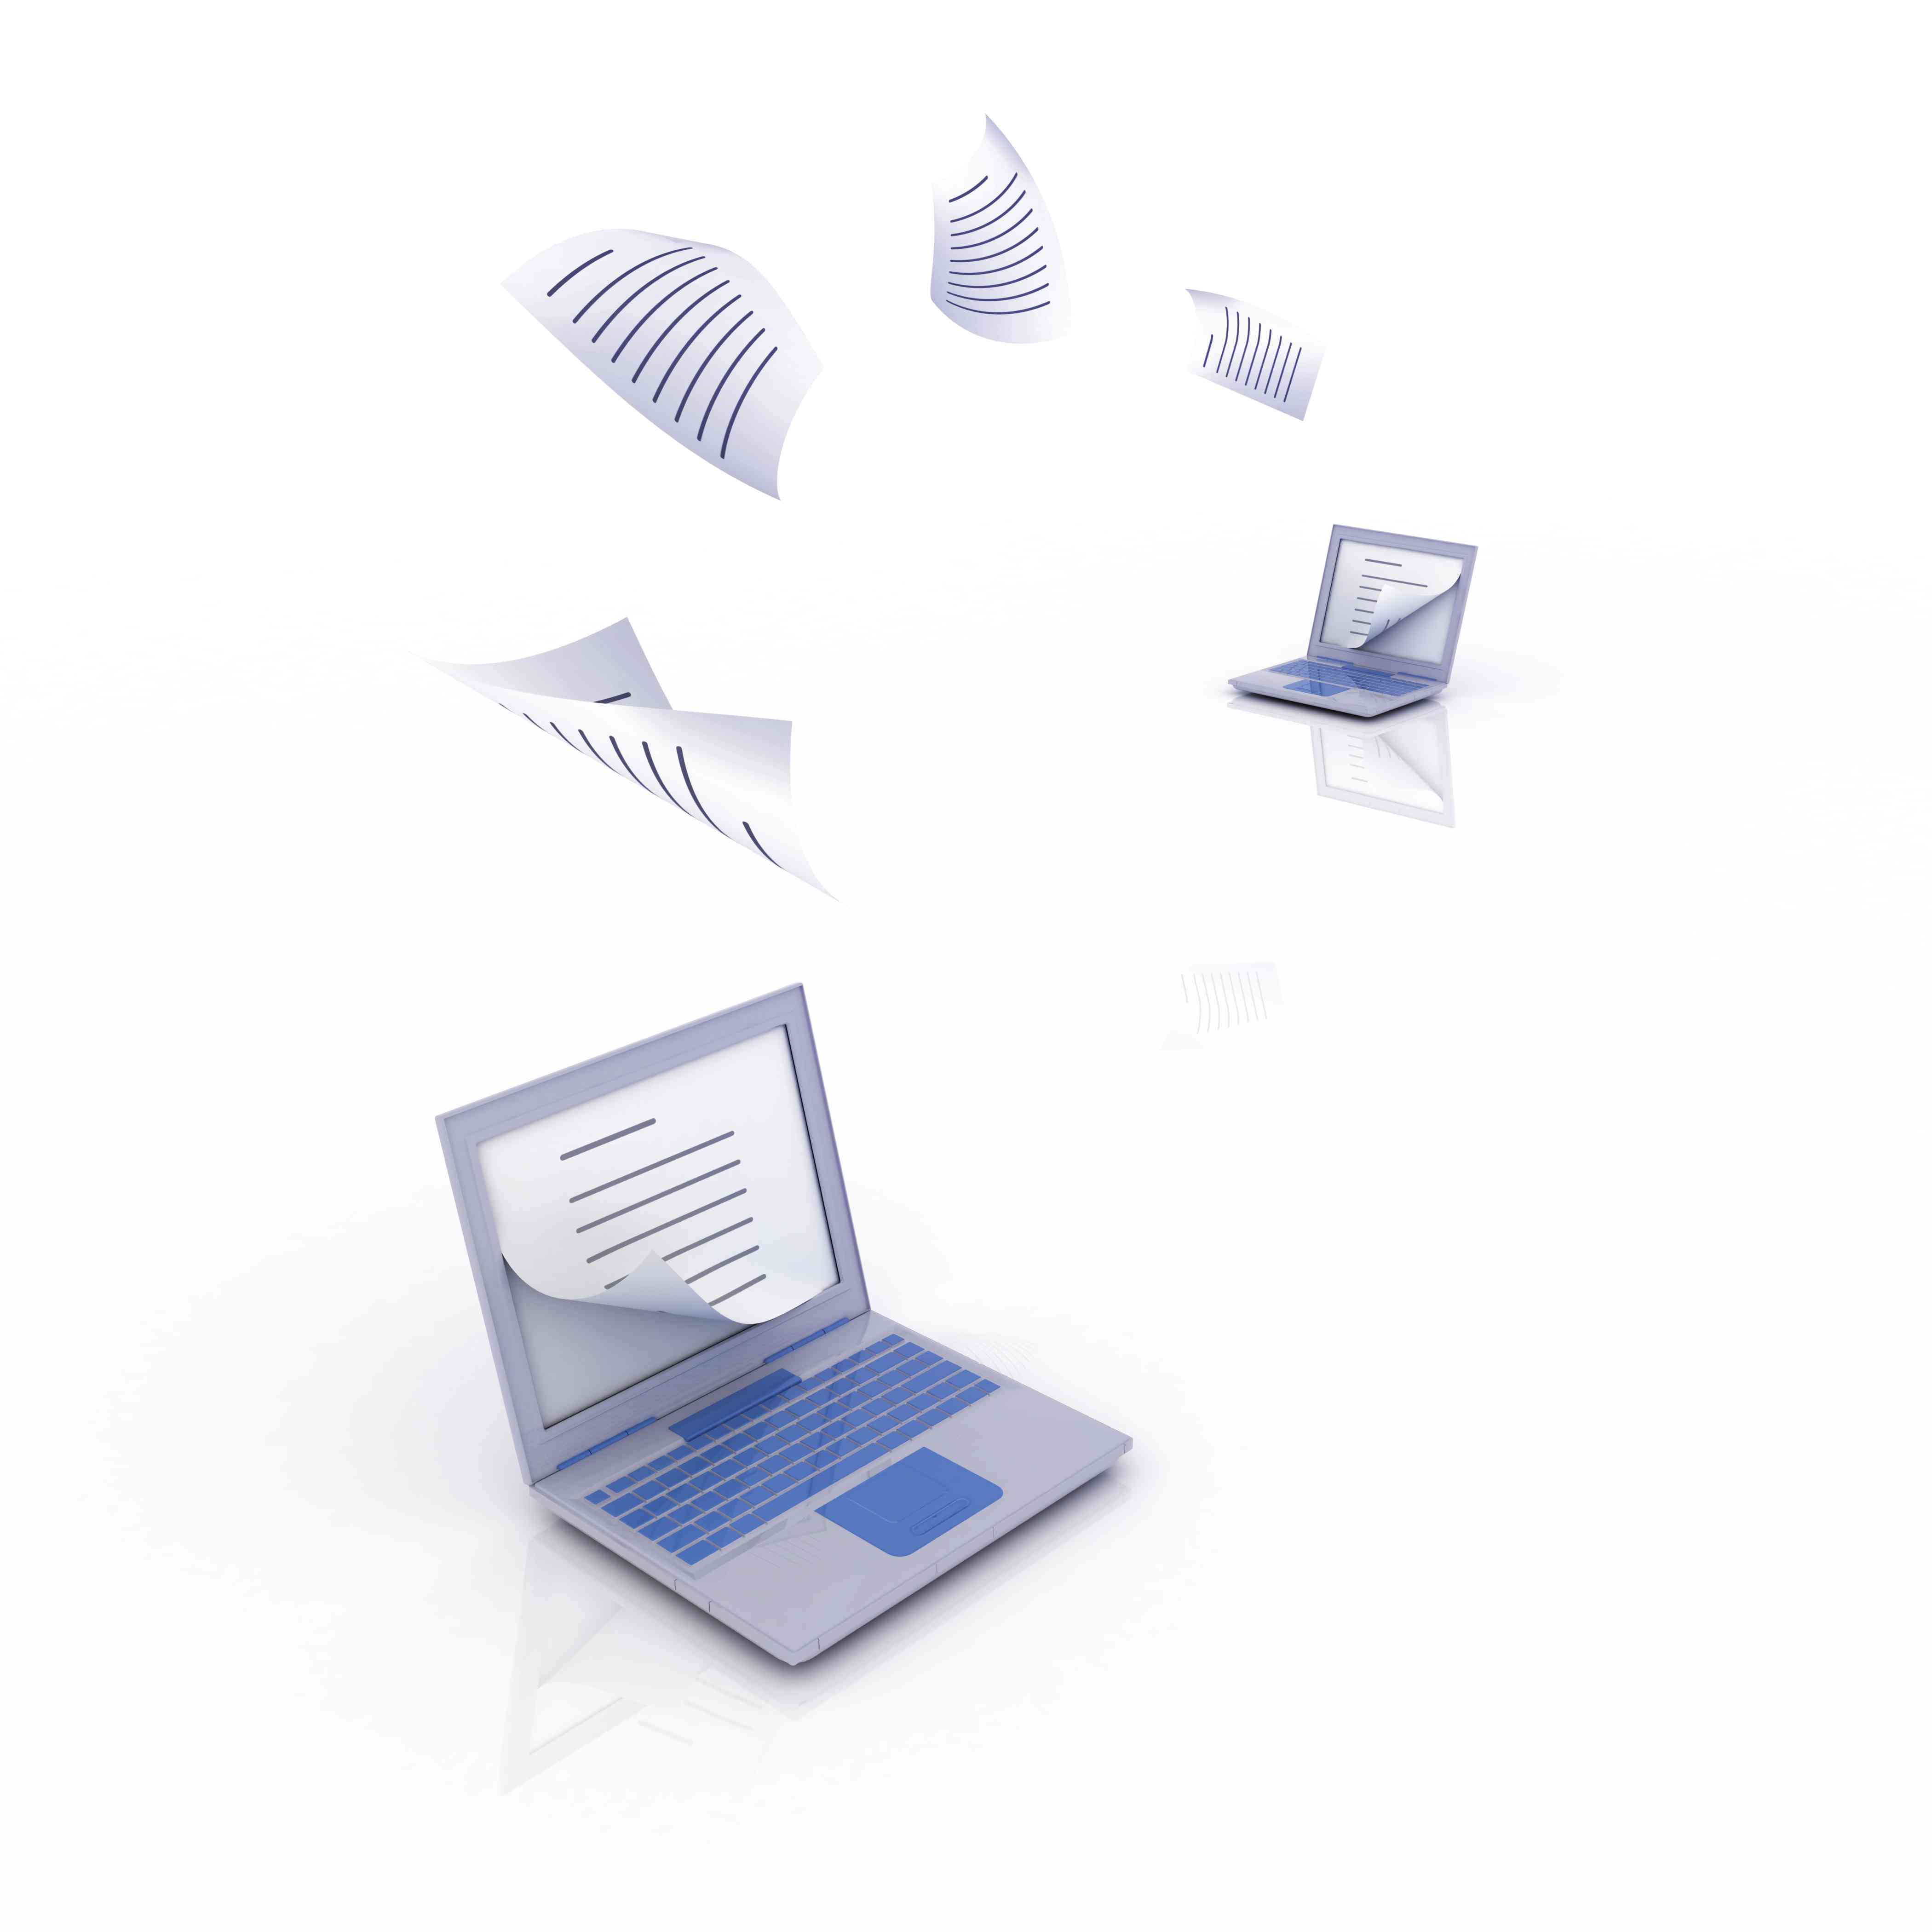 Paper floating from one laptop to another, depicting transferring WordPress blog files to Blogger